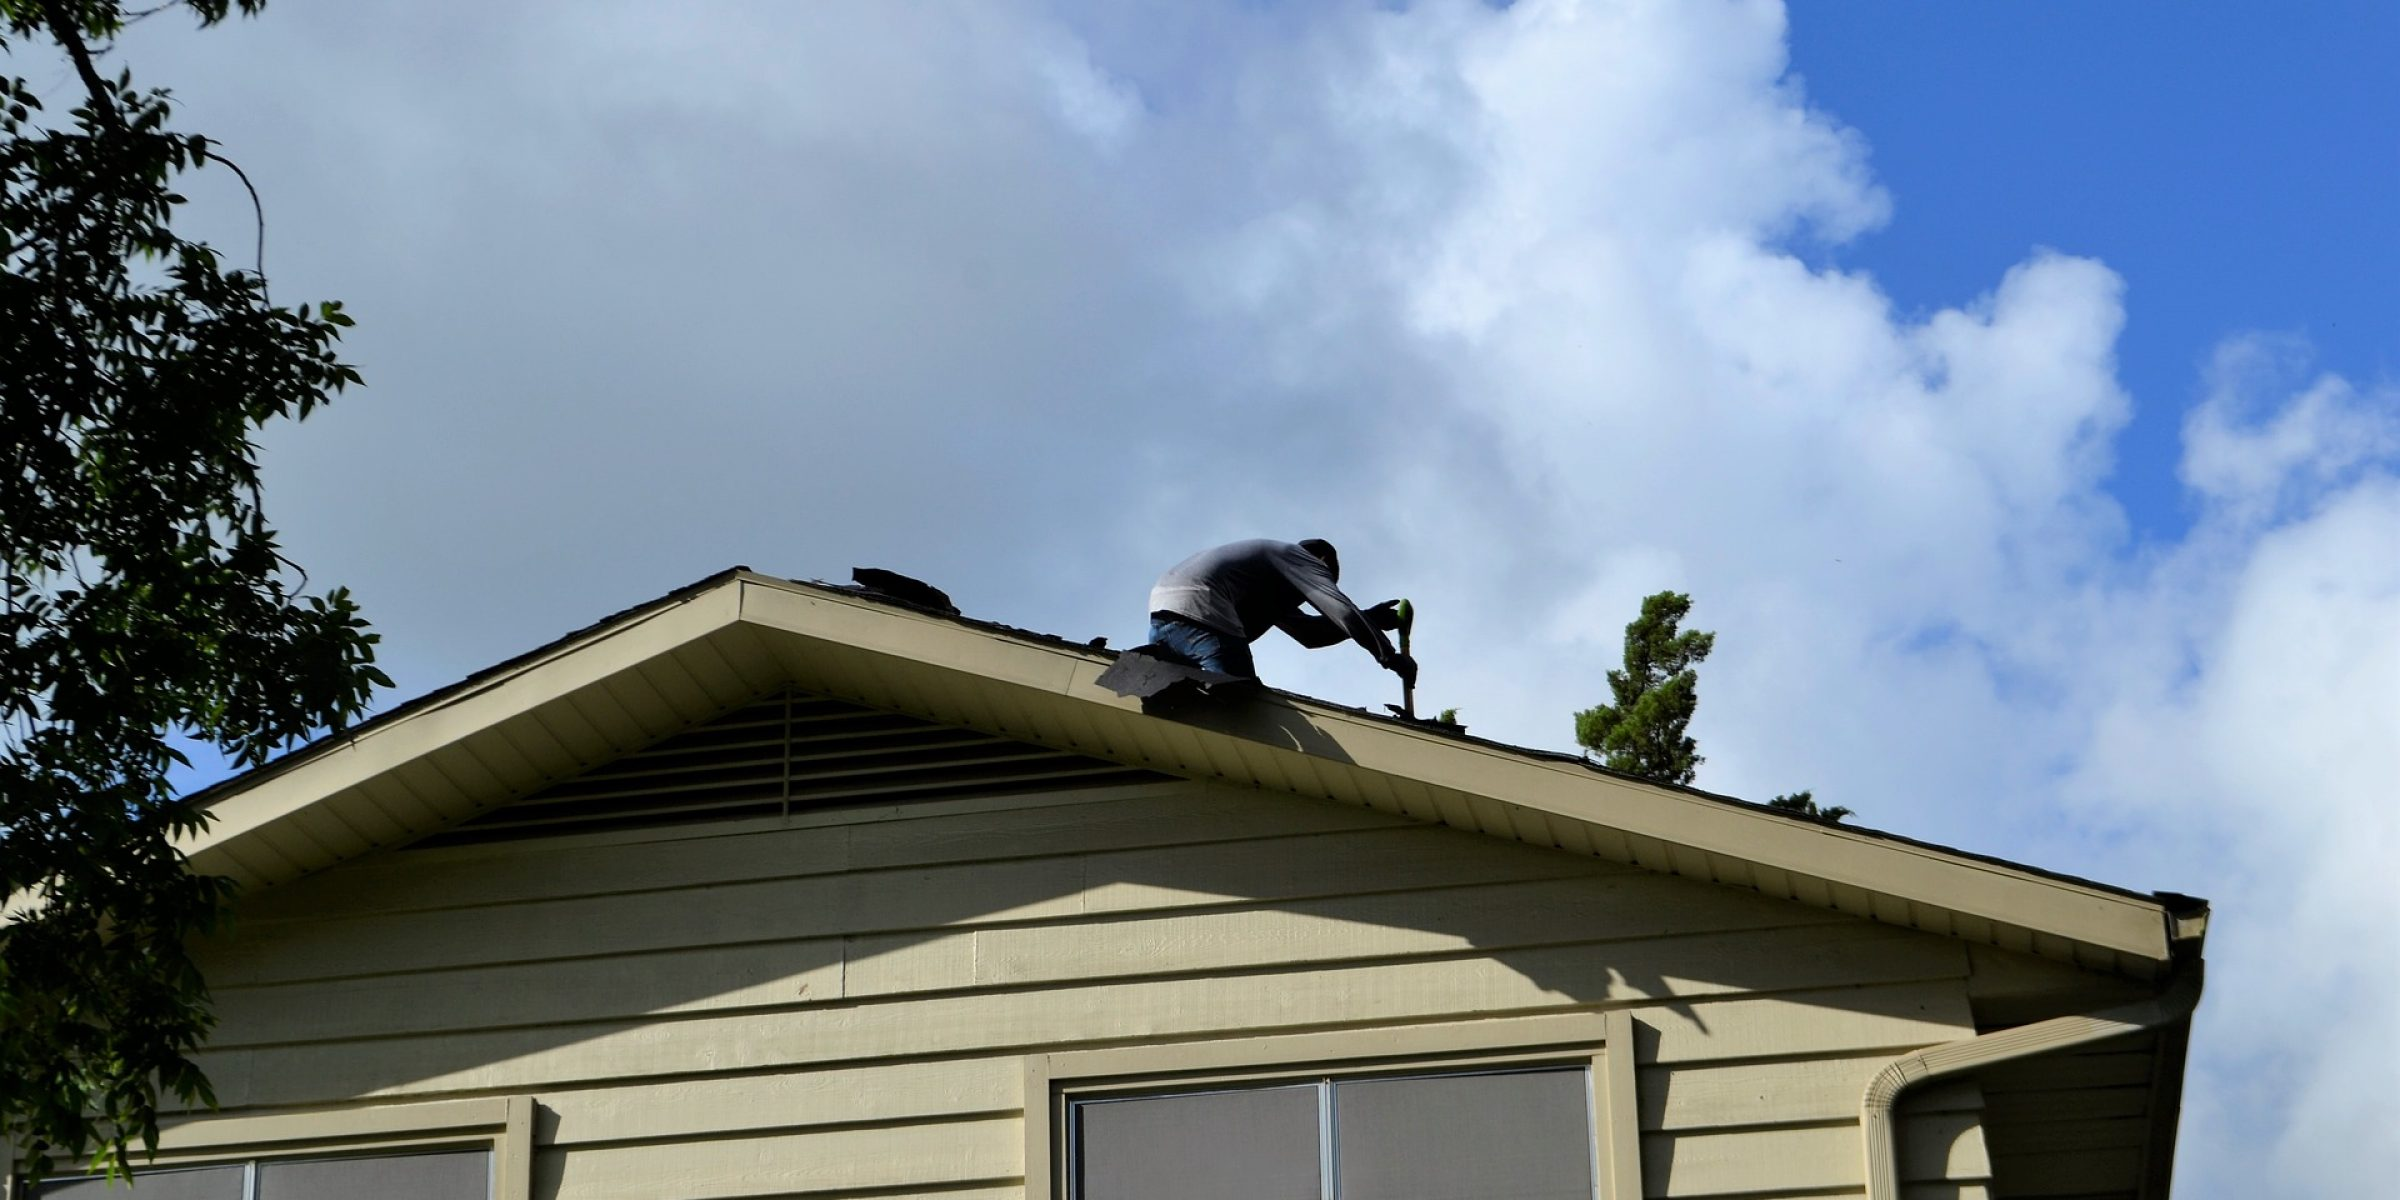 roofing-3755606_1920